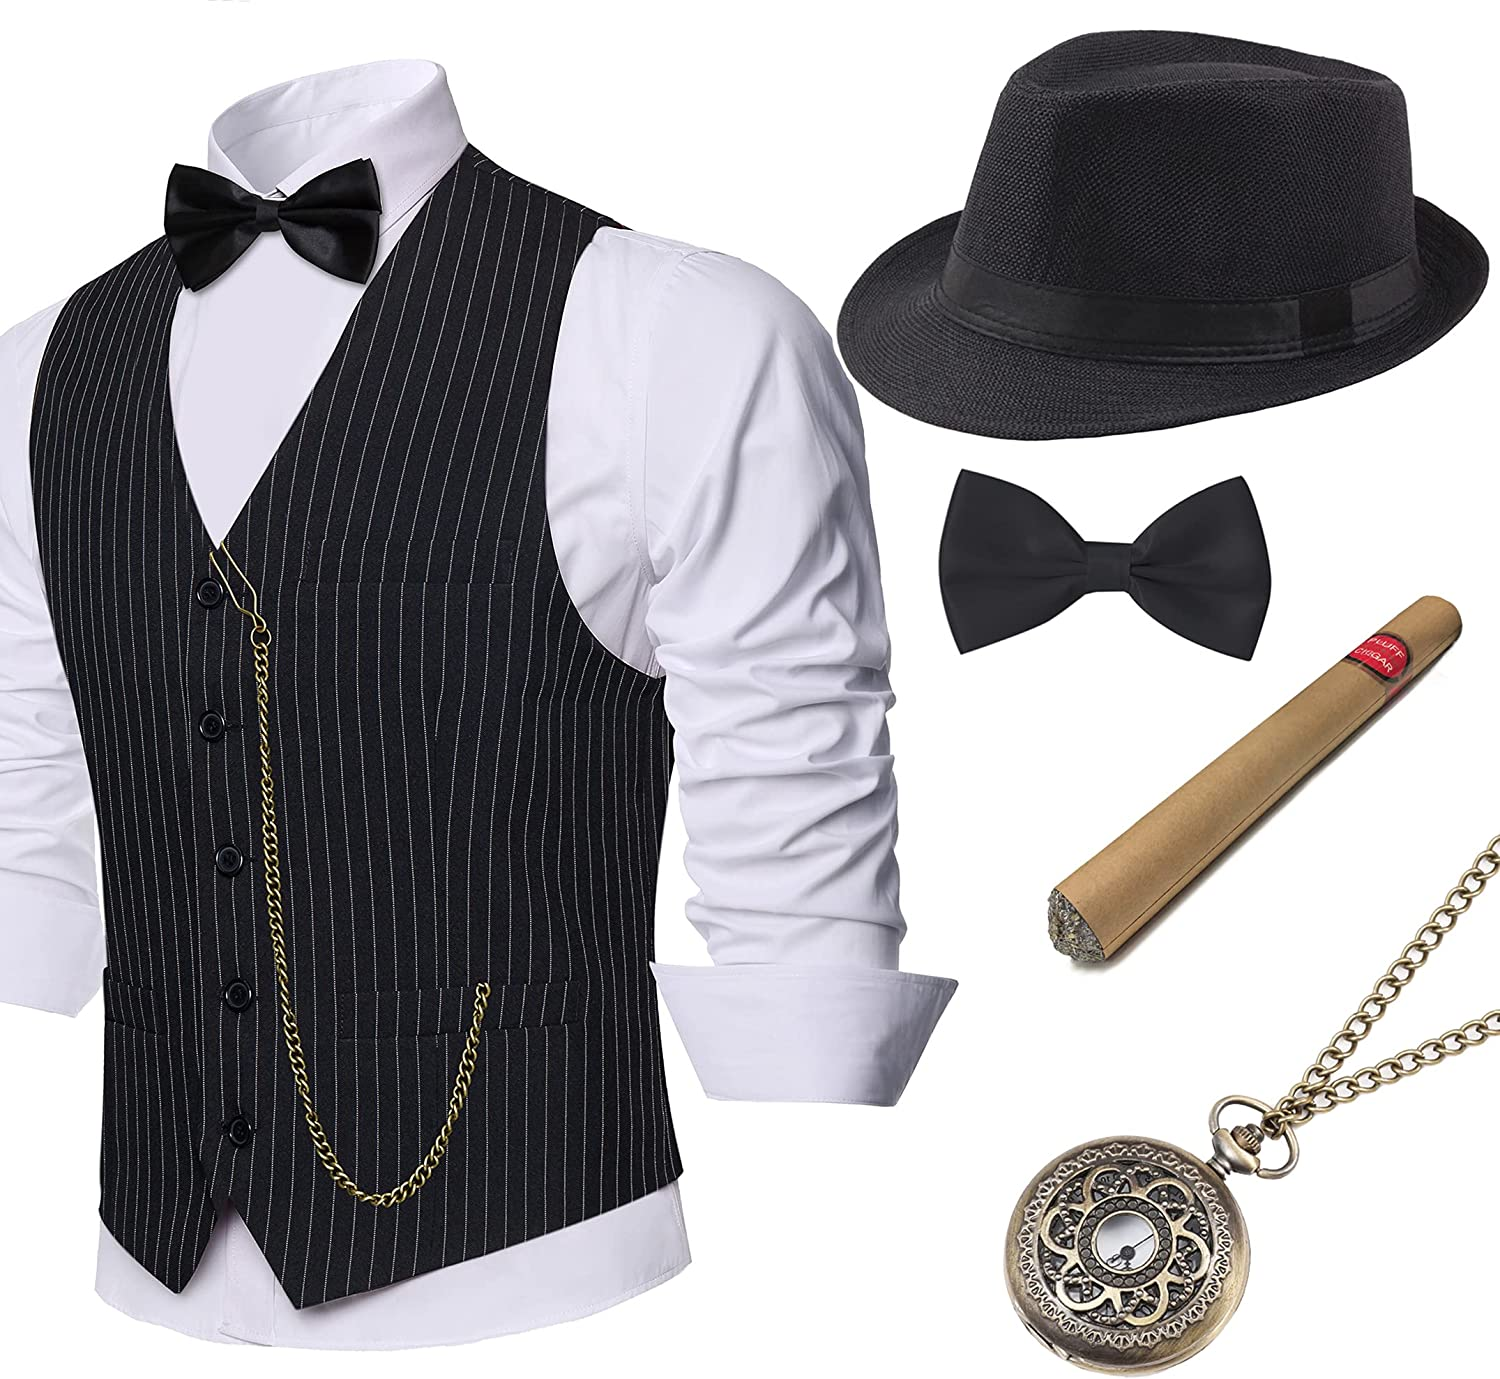 BABEYOND 1920s Mens Gatsby Gangster Vest Costume Accessories Set Fedora Hat: Clothing